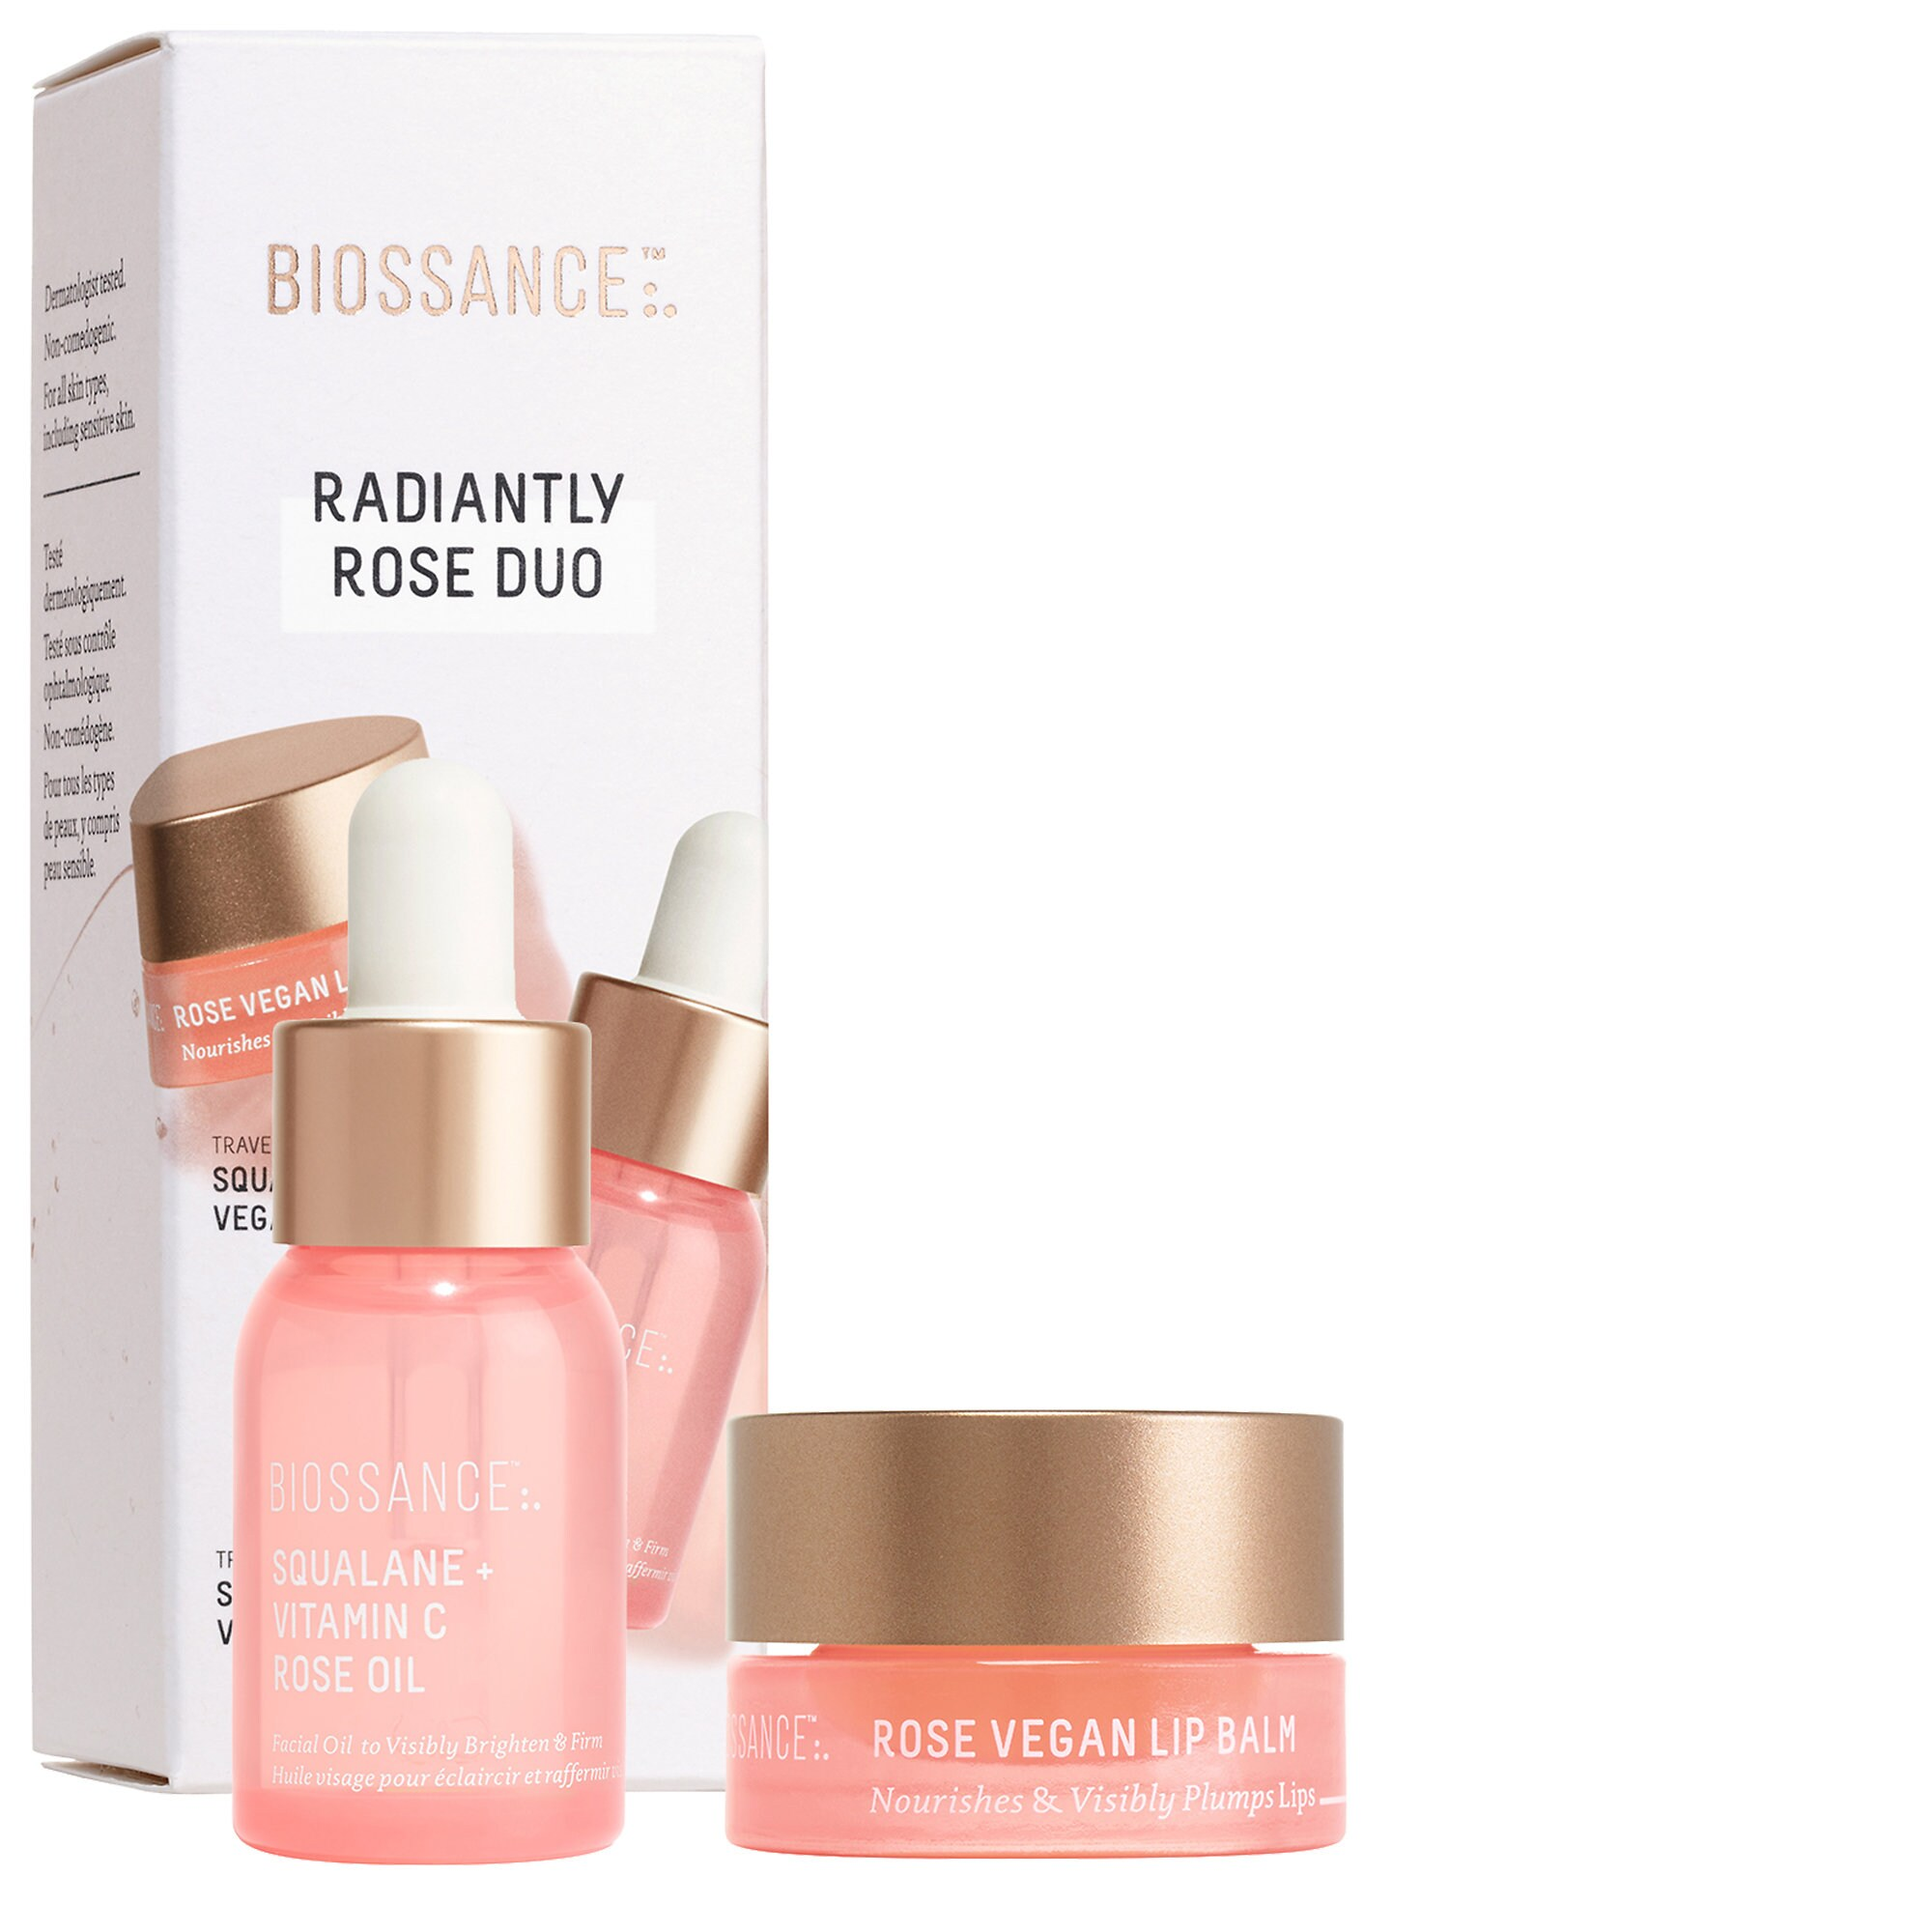 Biossance - Radiantly Rose Duo